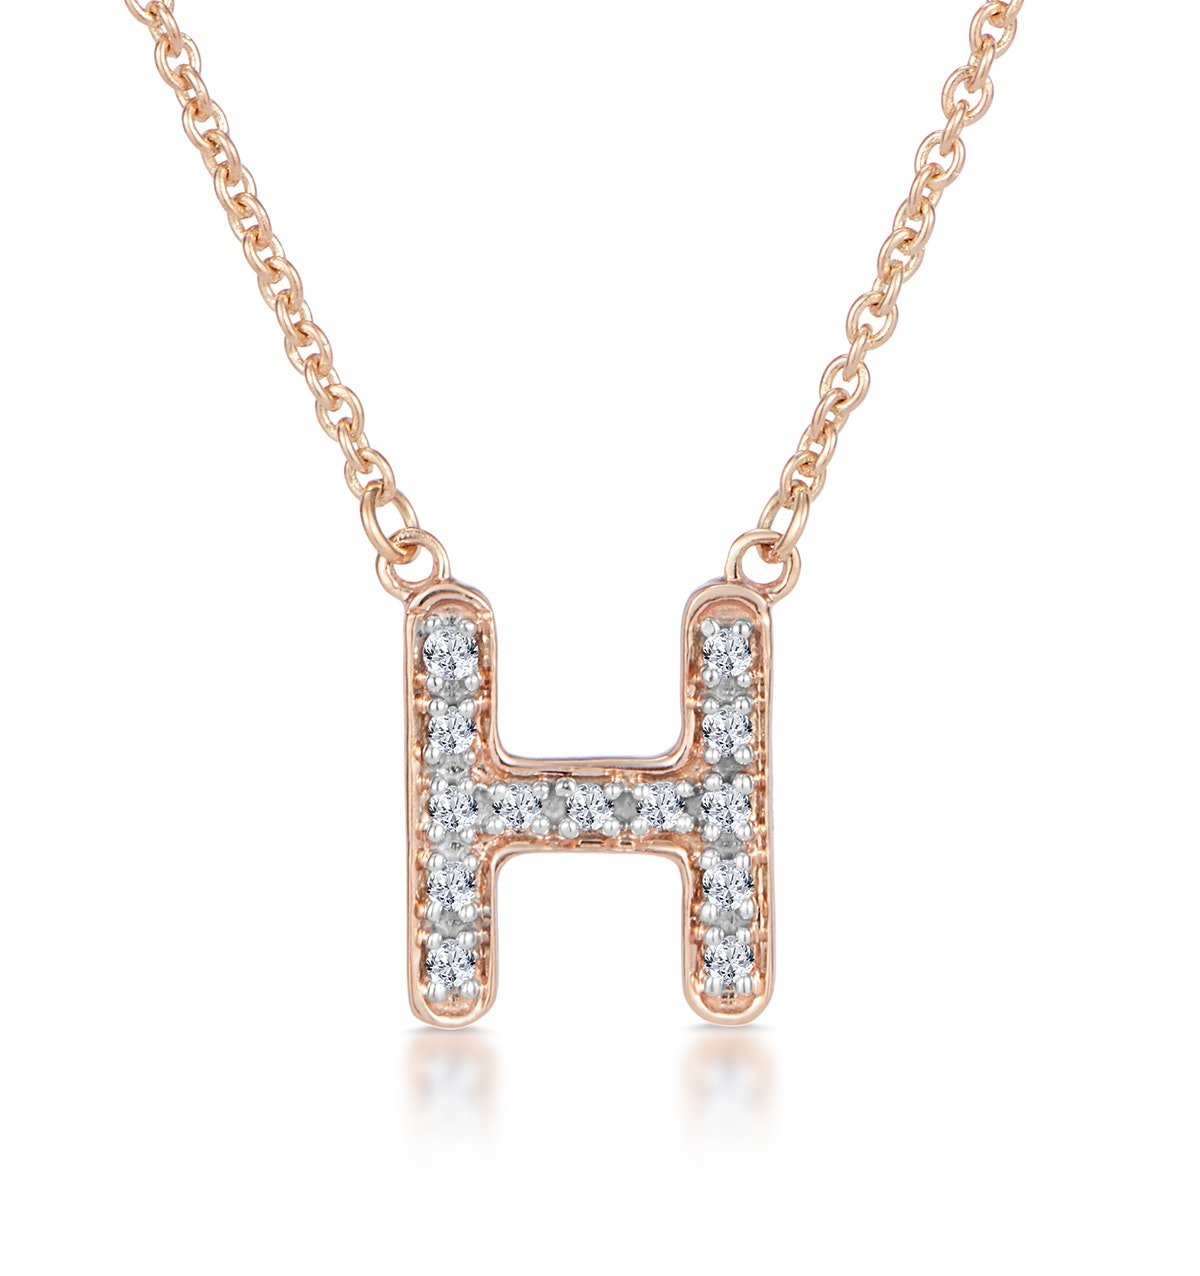 Initial 'H' Necklace Diamond Encrusted Pave Set in 9K Rose Gold